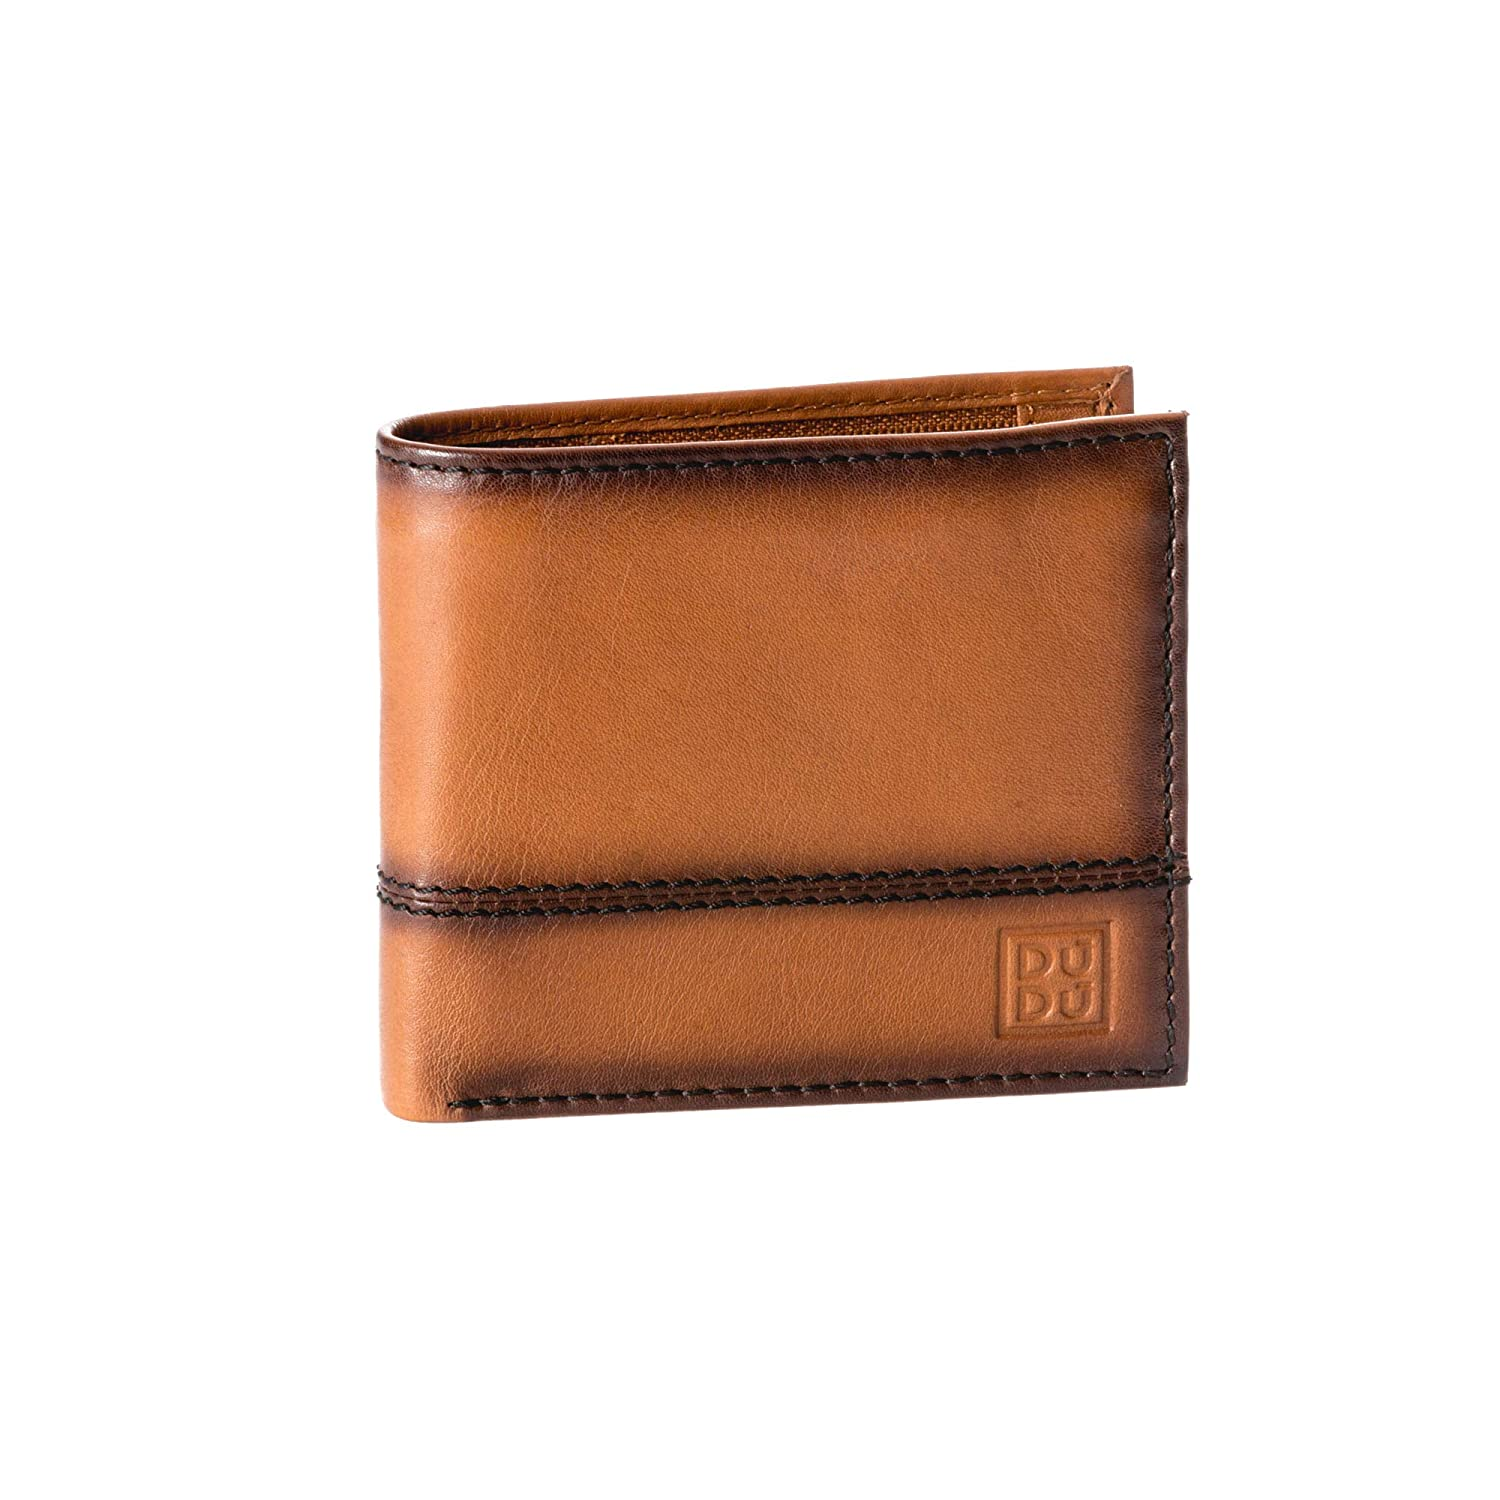 620fca552d6b Small mens wallet with coin pocket in genuine leather and inner zip slot DUDU  Light brown  Amazon.co.uk  Luggage